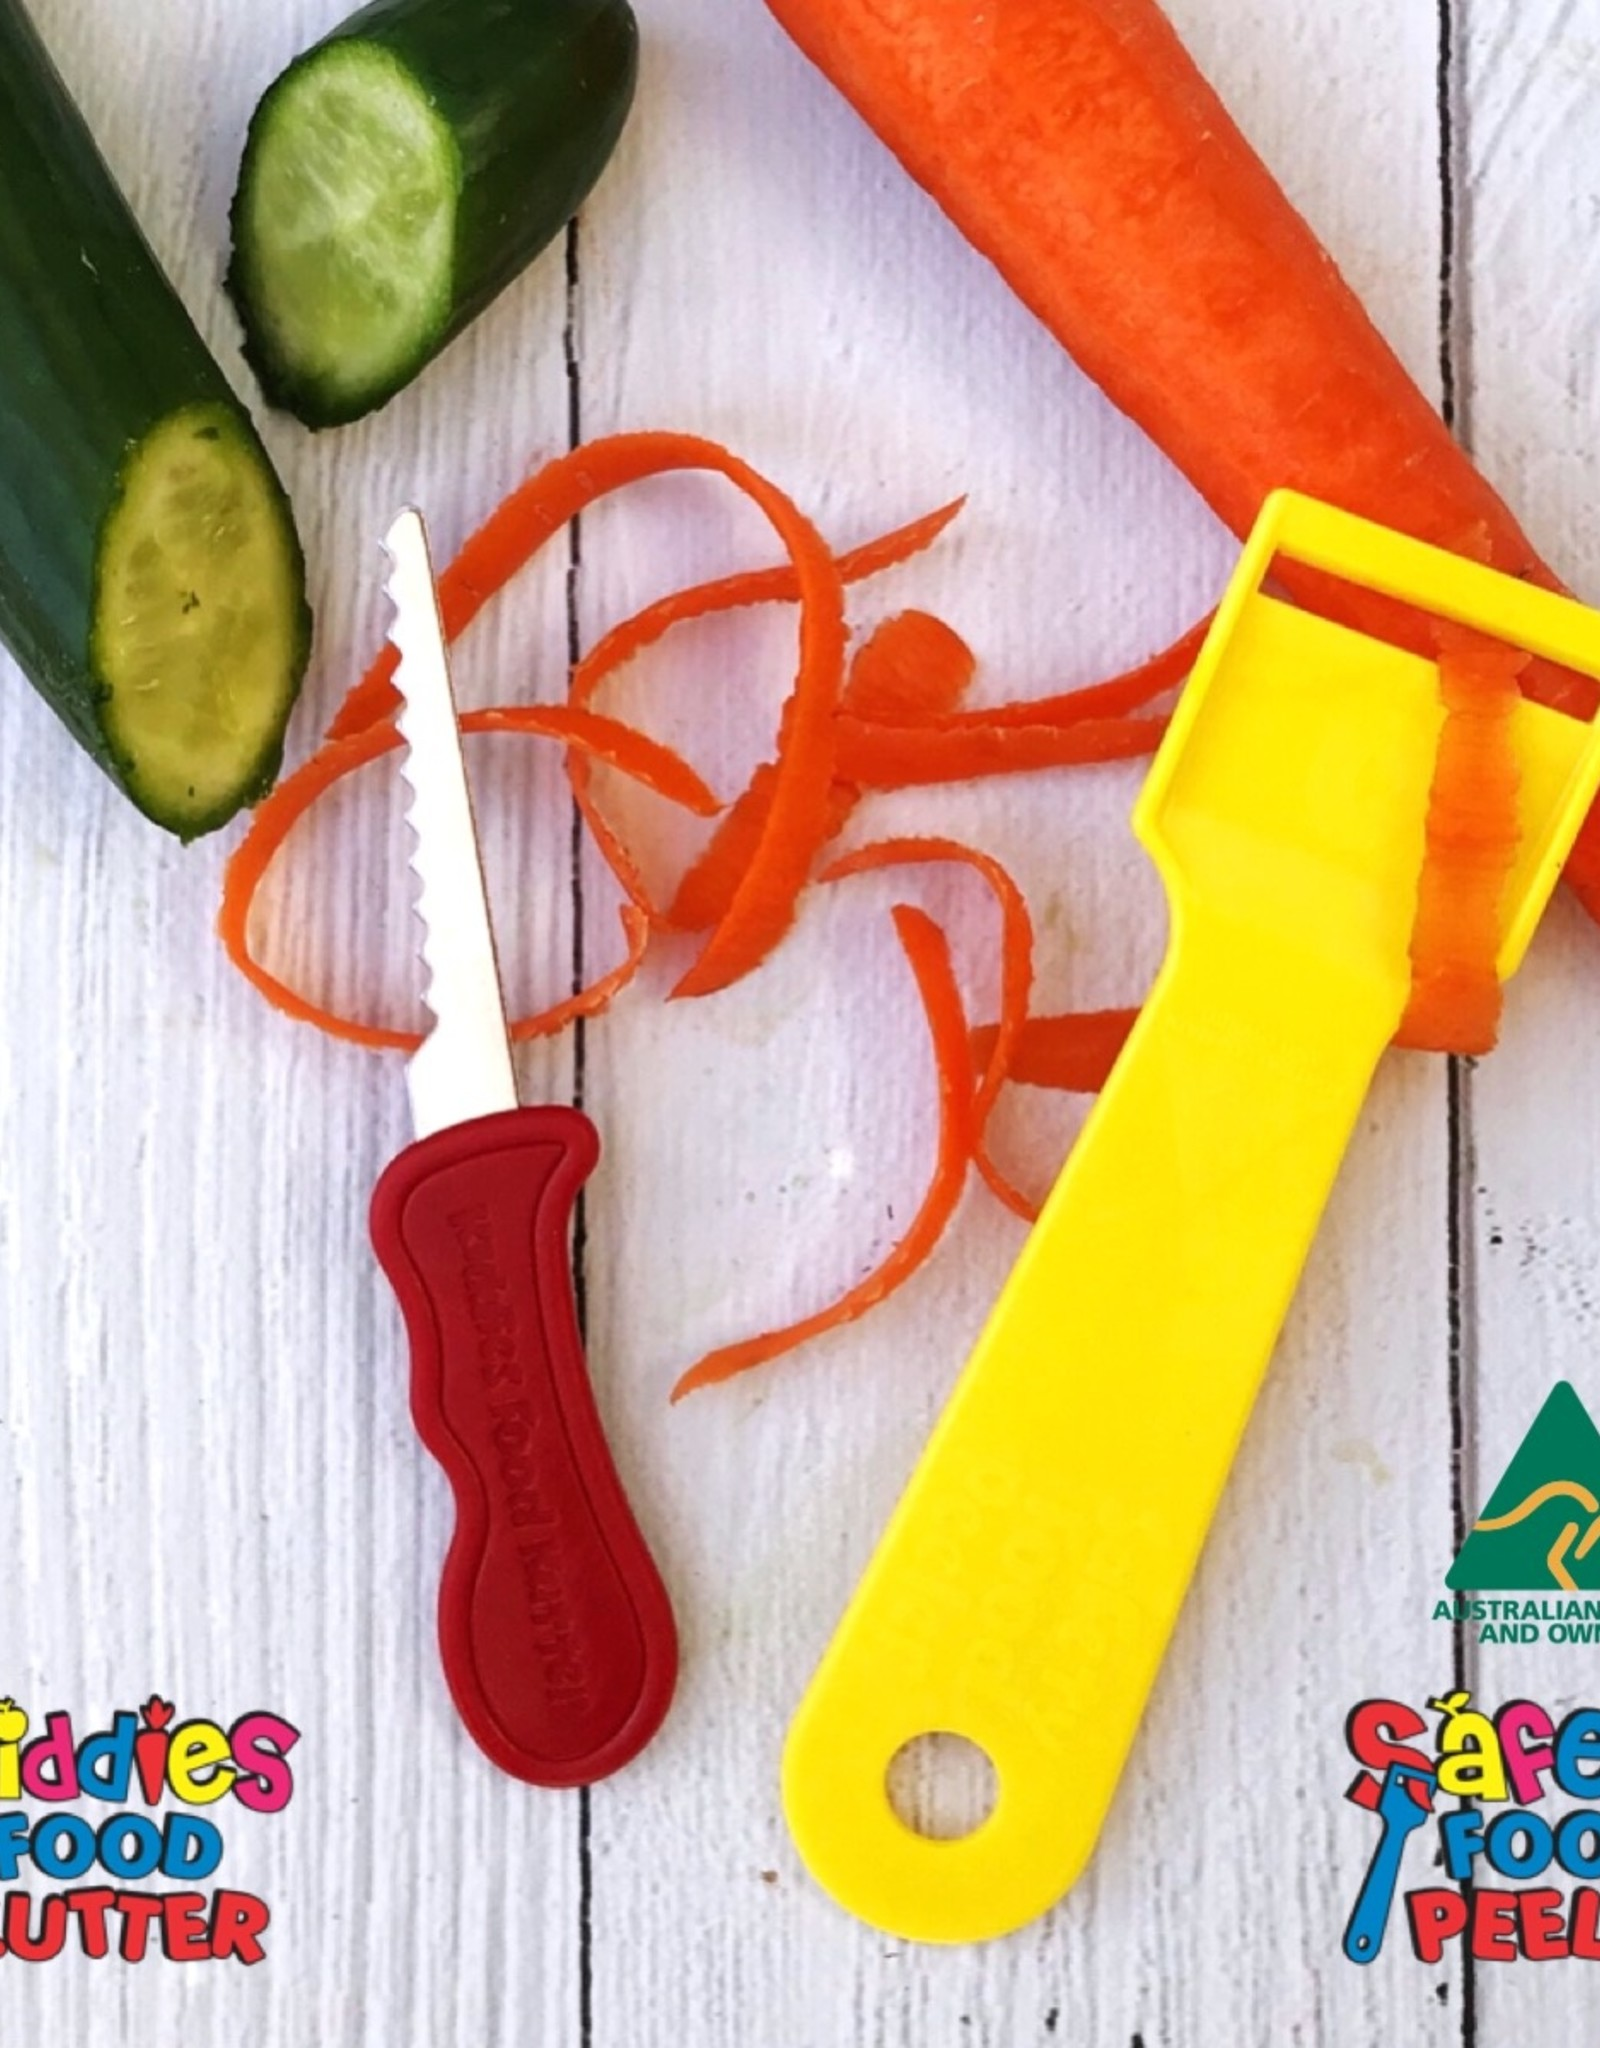 Kiddies Food Kutter Kiddies duo pack: mes + schiller - Geel